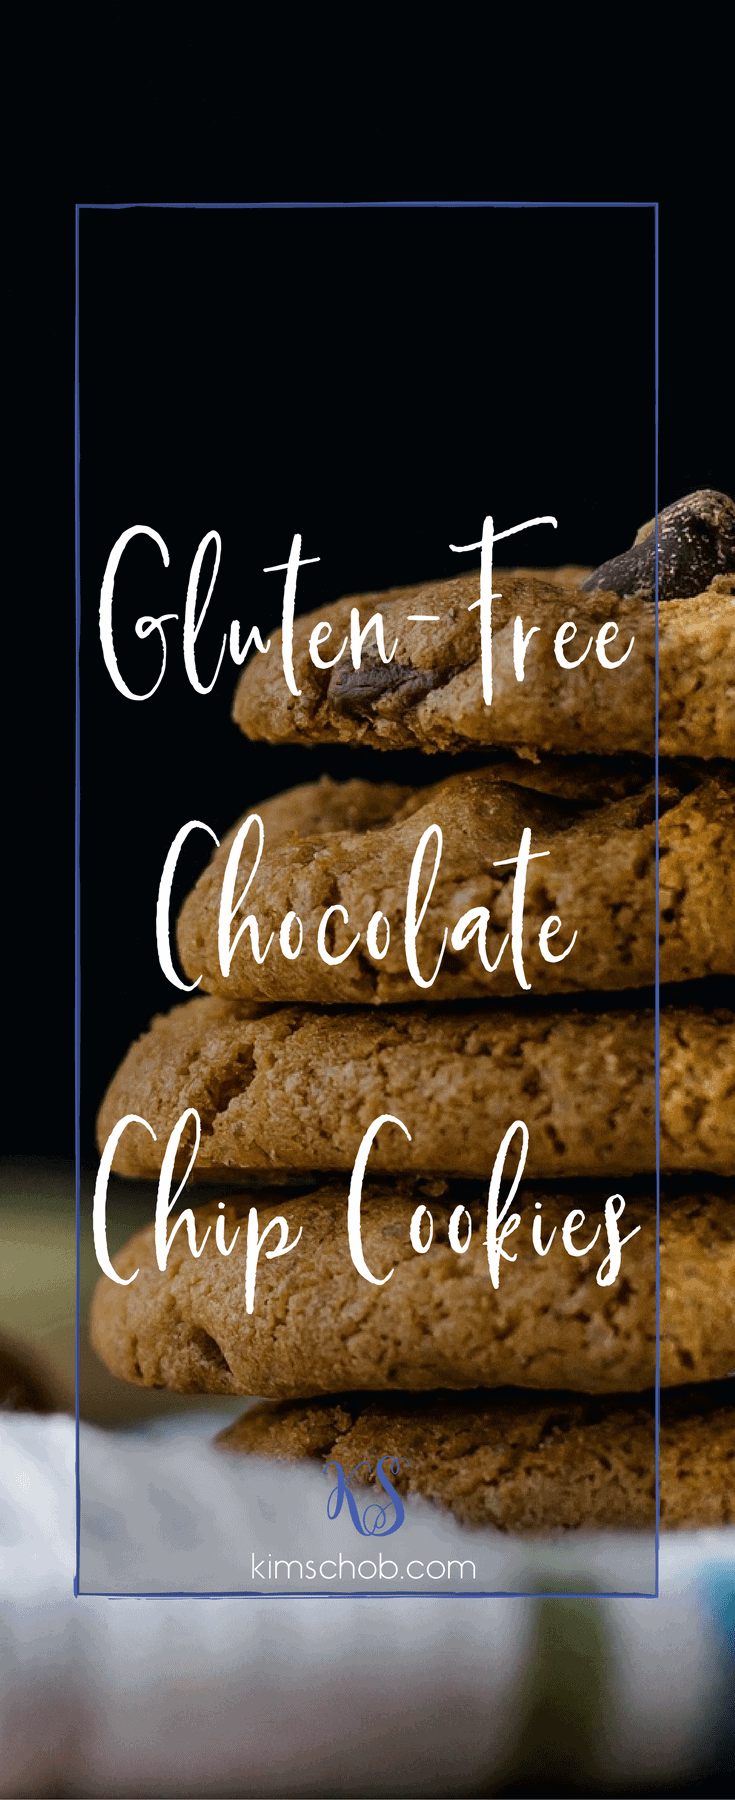 Gluten-free chocolate chip cookies| kimschob.com | Halloween treats. Party treats. Gluten-free treats. #kimschob #glutenfree #glutenfreechocolatechipcookies